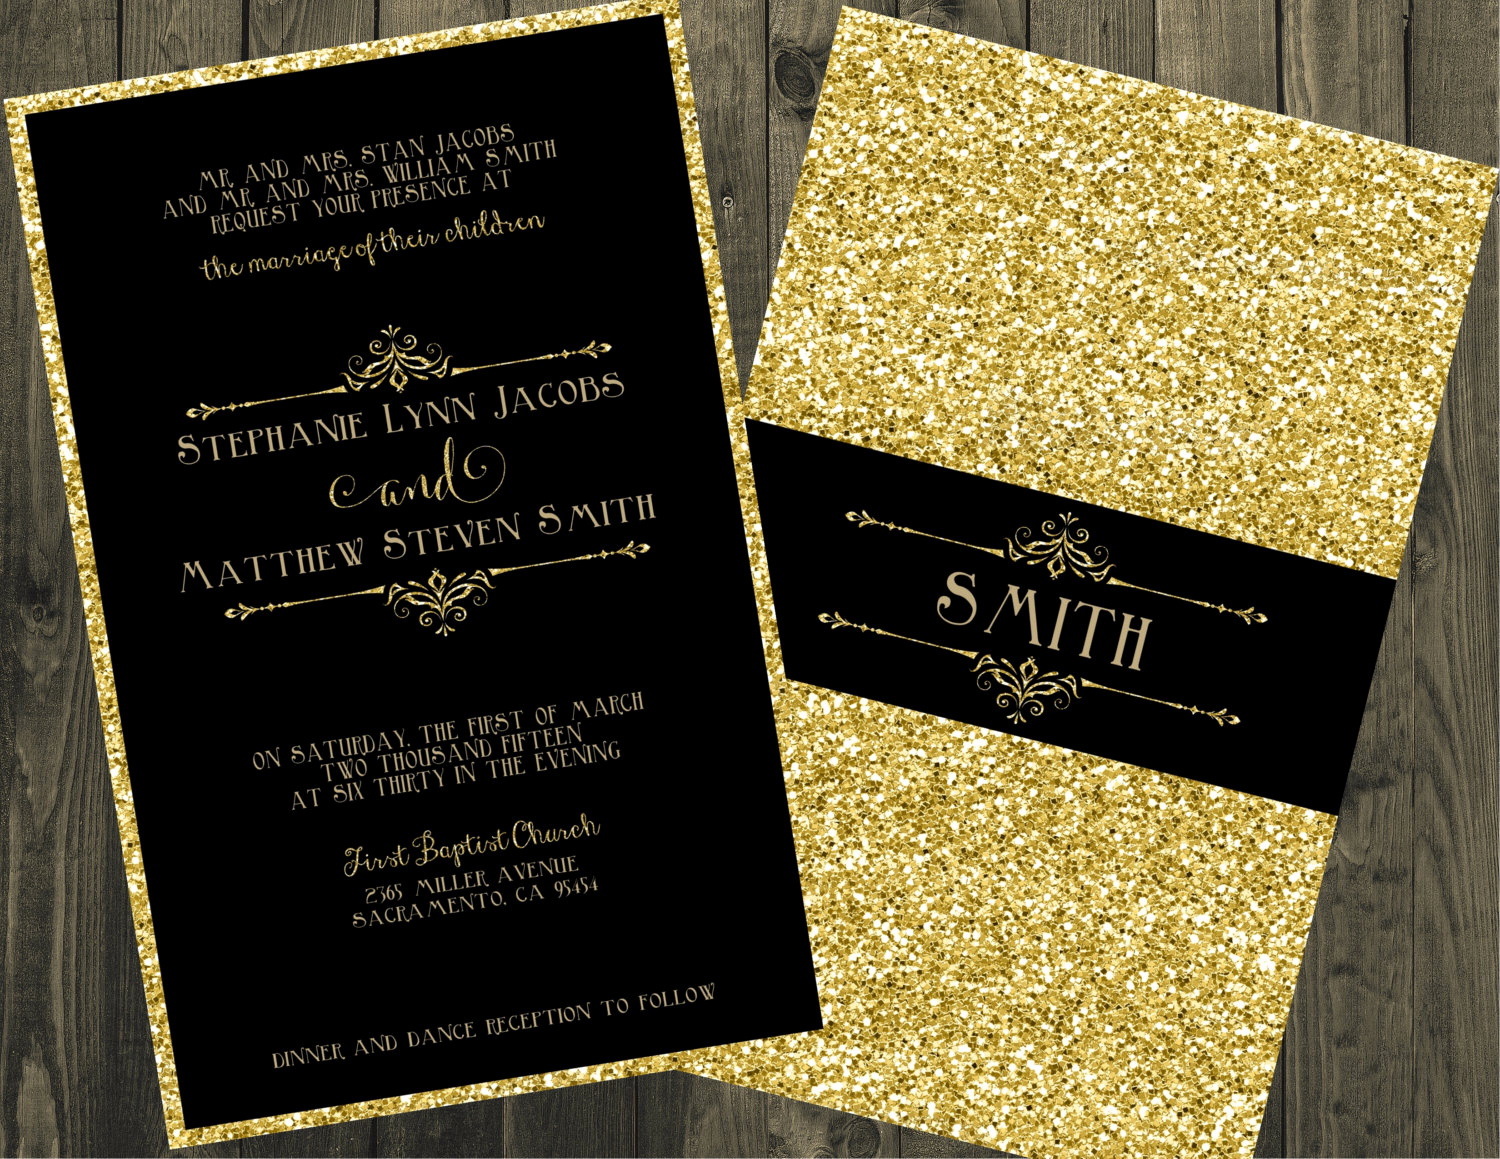 Black and Gold Invitation Template Lovely Black and Gold Wedding Invitation Glitter Wedding